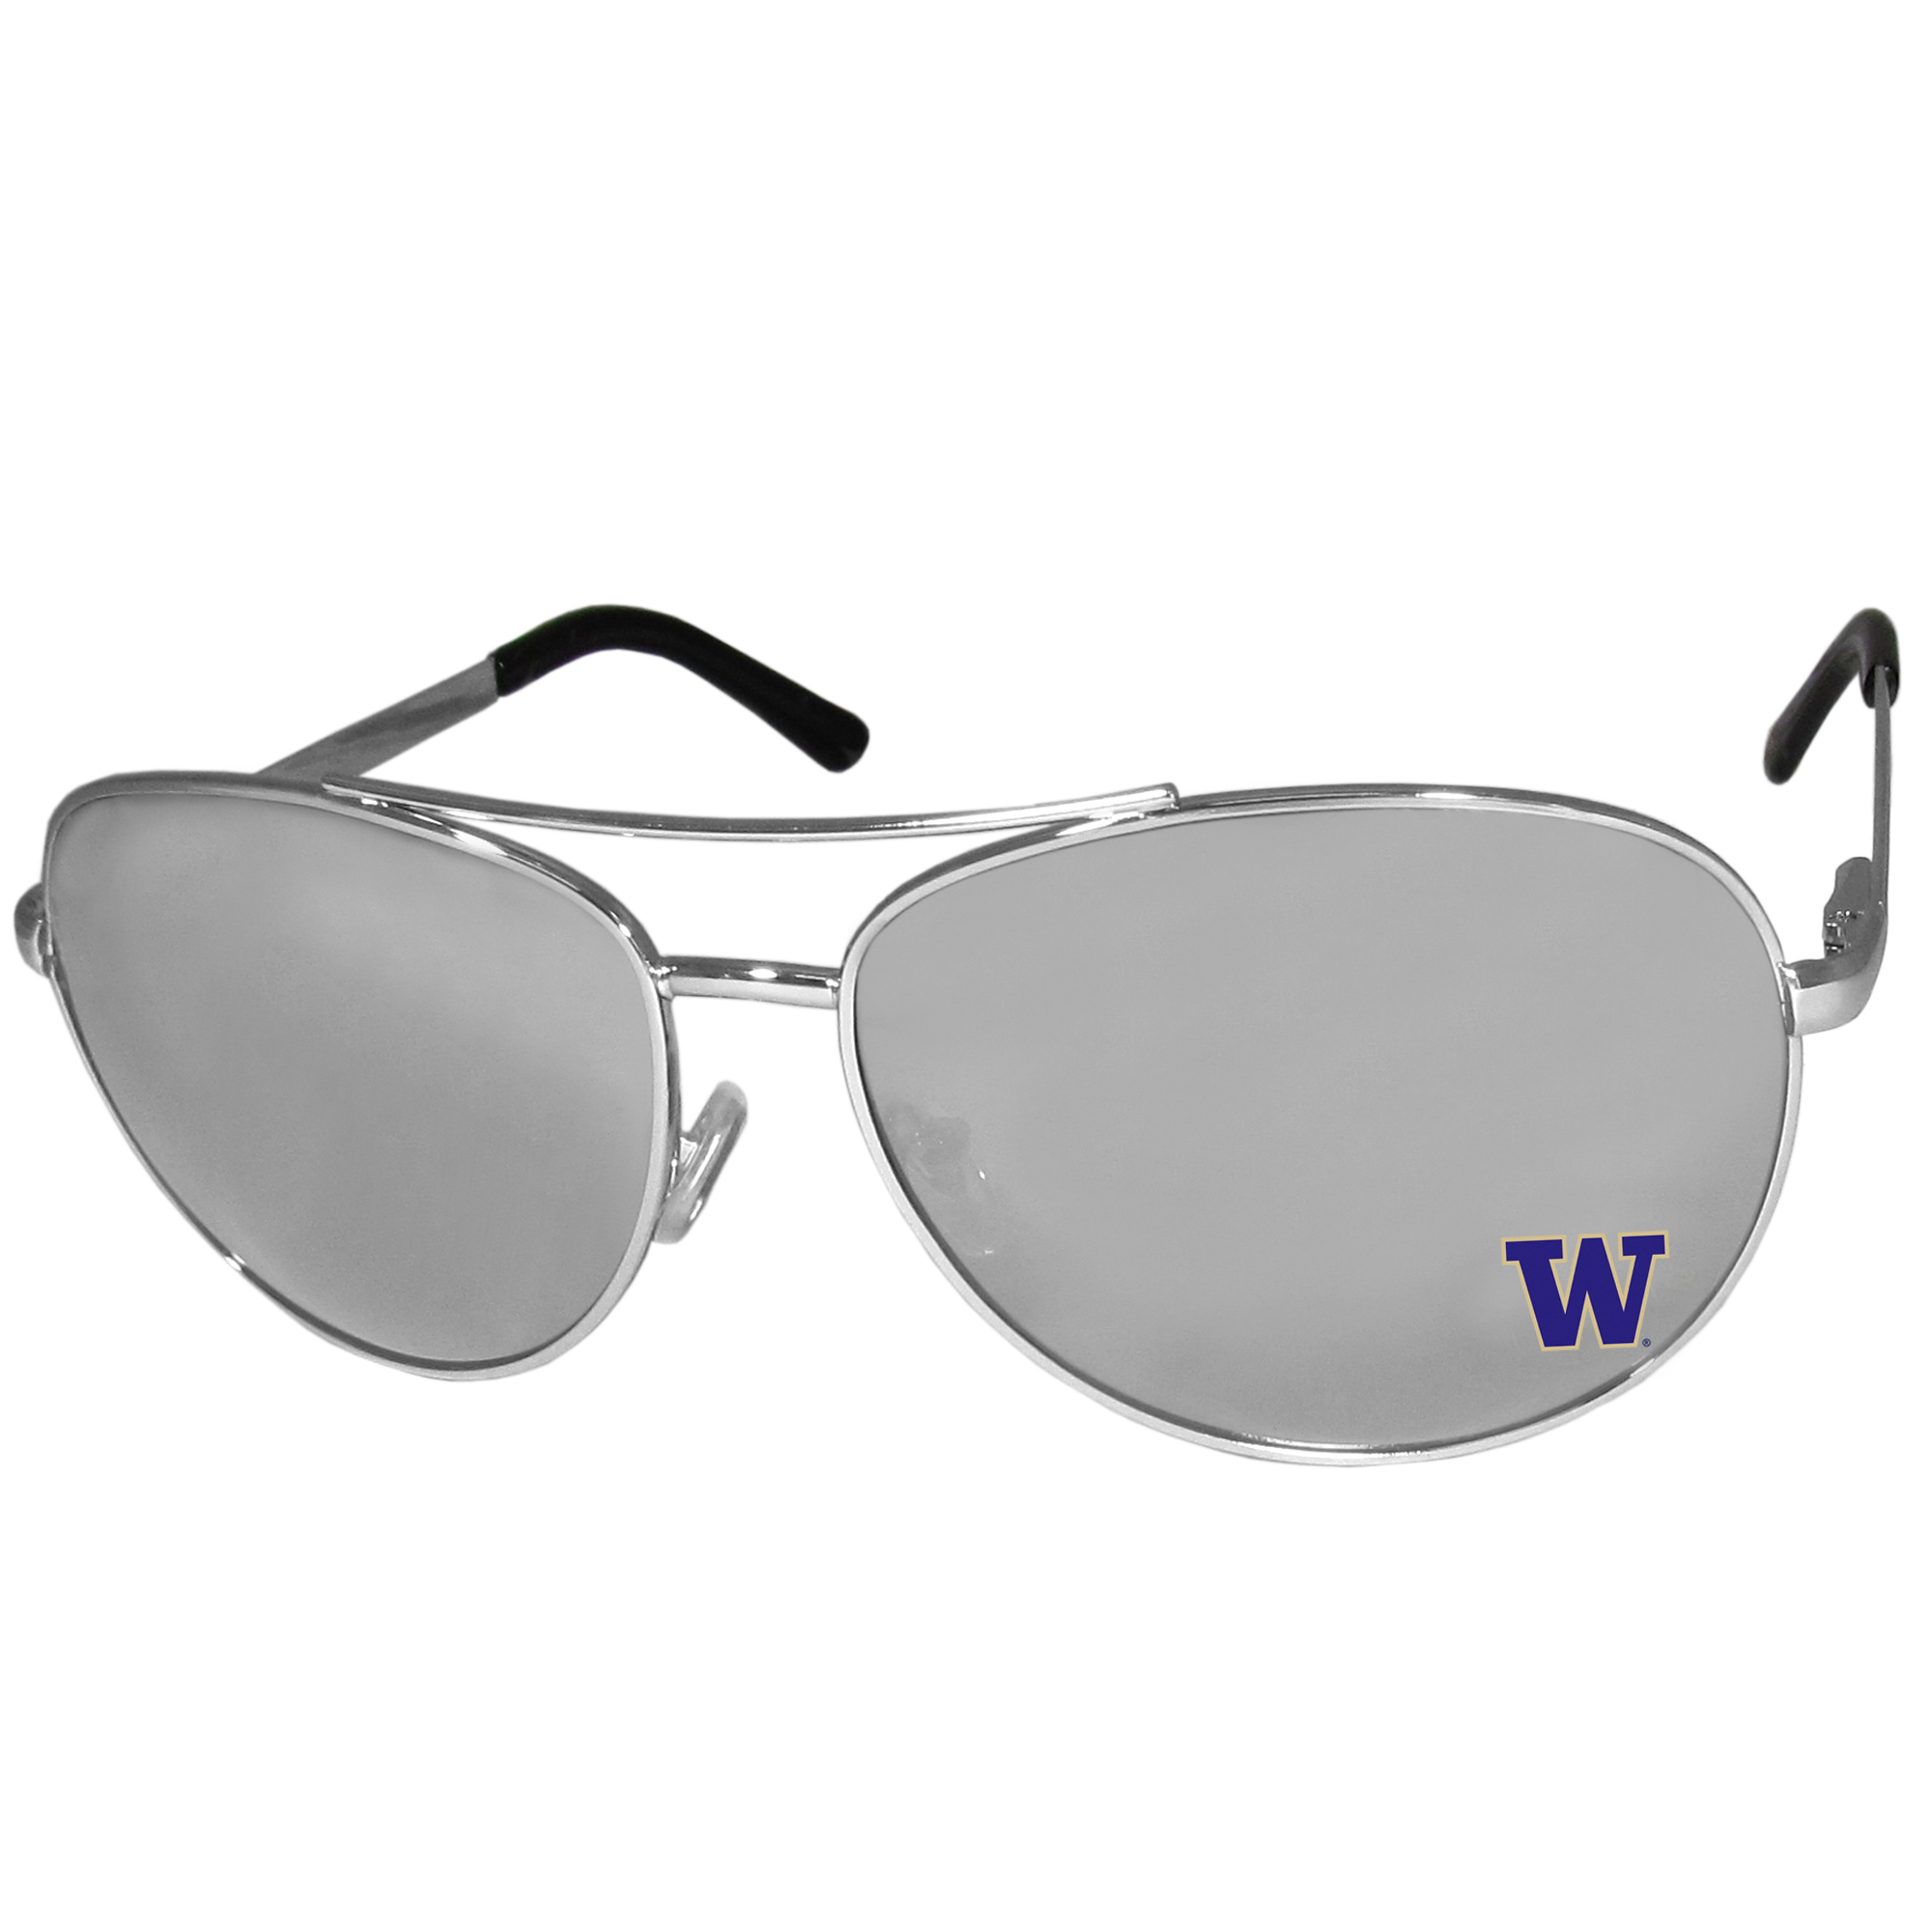 Washington Huskies Aviator Sunglasses - Our aviator sunglasses have the iconic aviator style with mirrored lenses and metal frames. The glasses feature a silk screened Washington Huskies logo in the corner of the lense. 100% UVA/UVB protection.